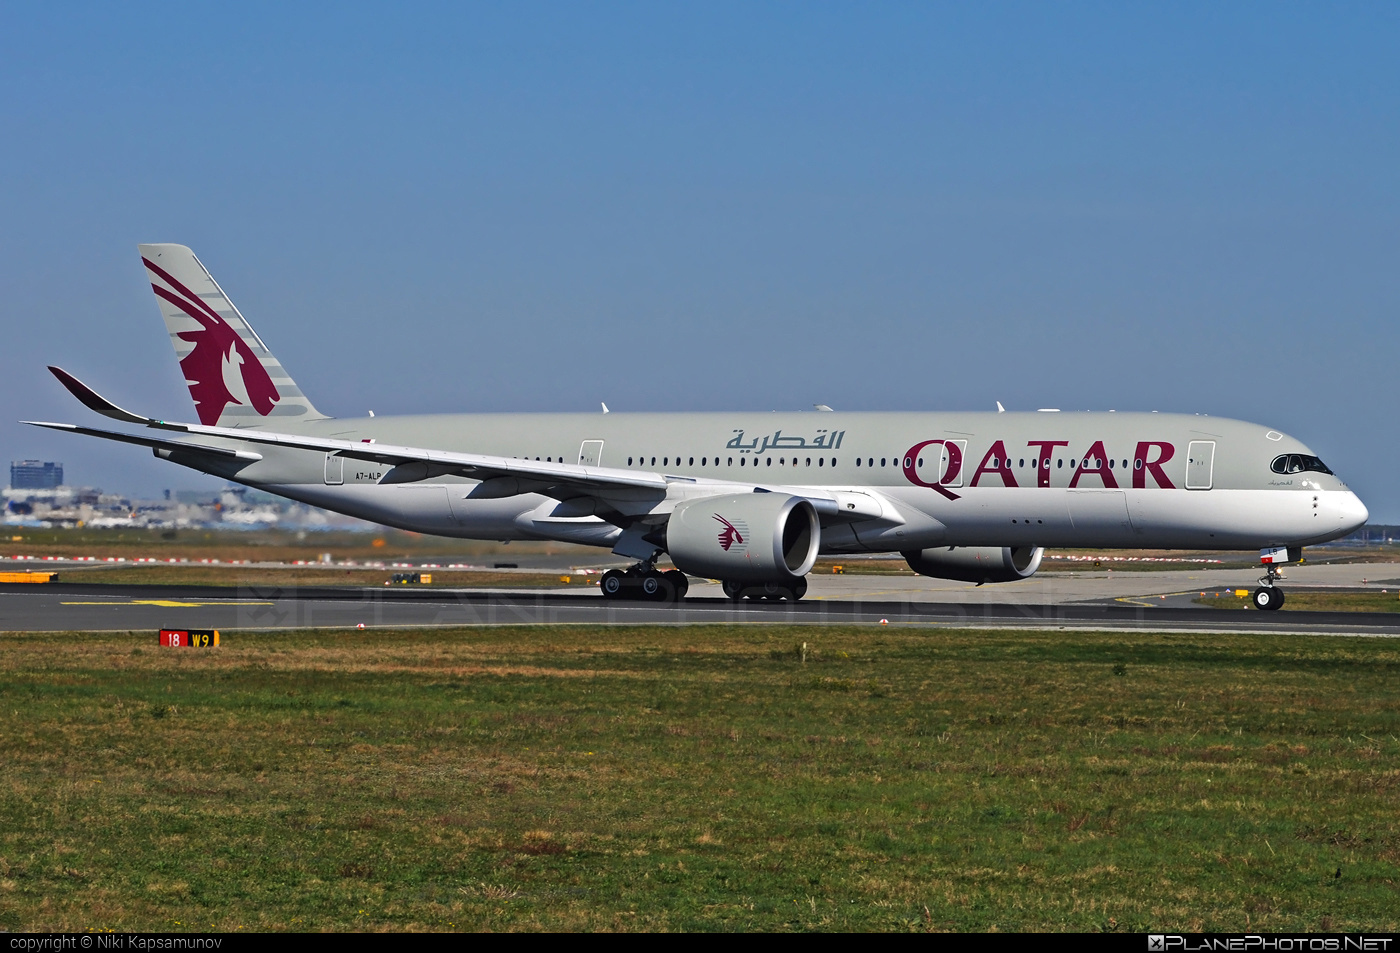 Airbus A350-941 - A7-ALB operated by Qatar Airways #a350 #a350family #airbus #airbus350 #qatarairways #xwb